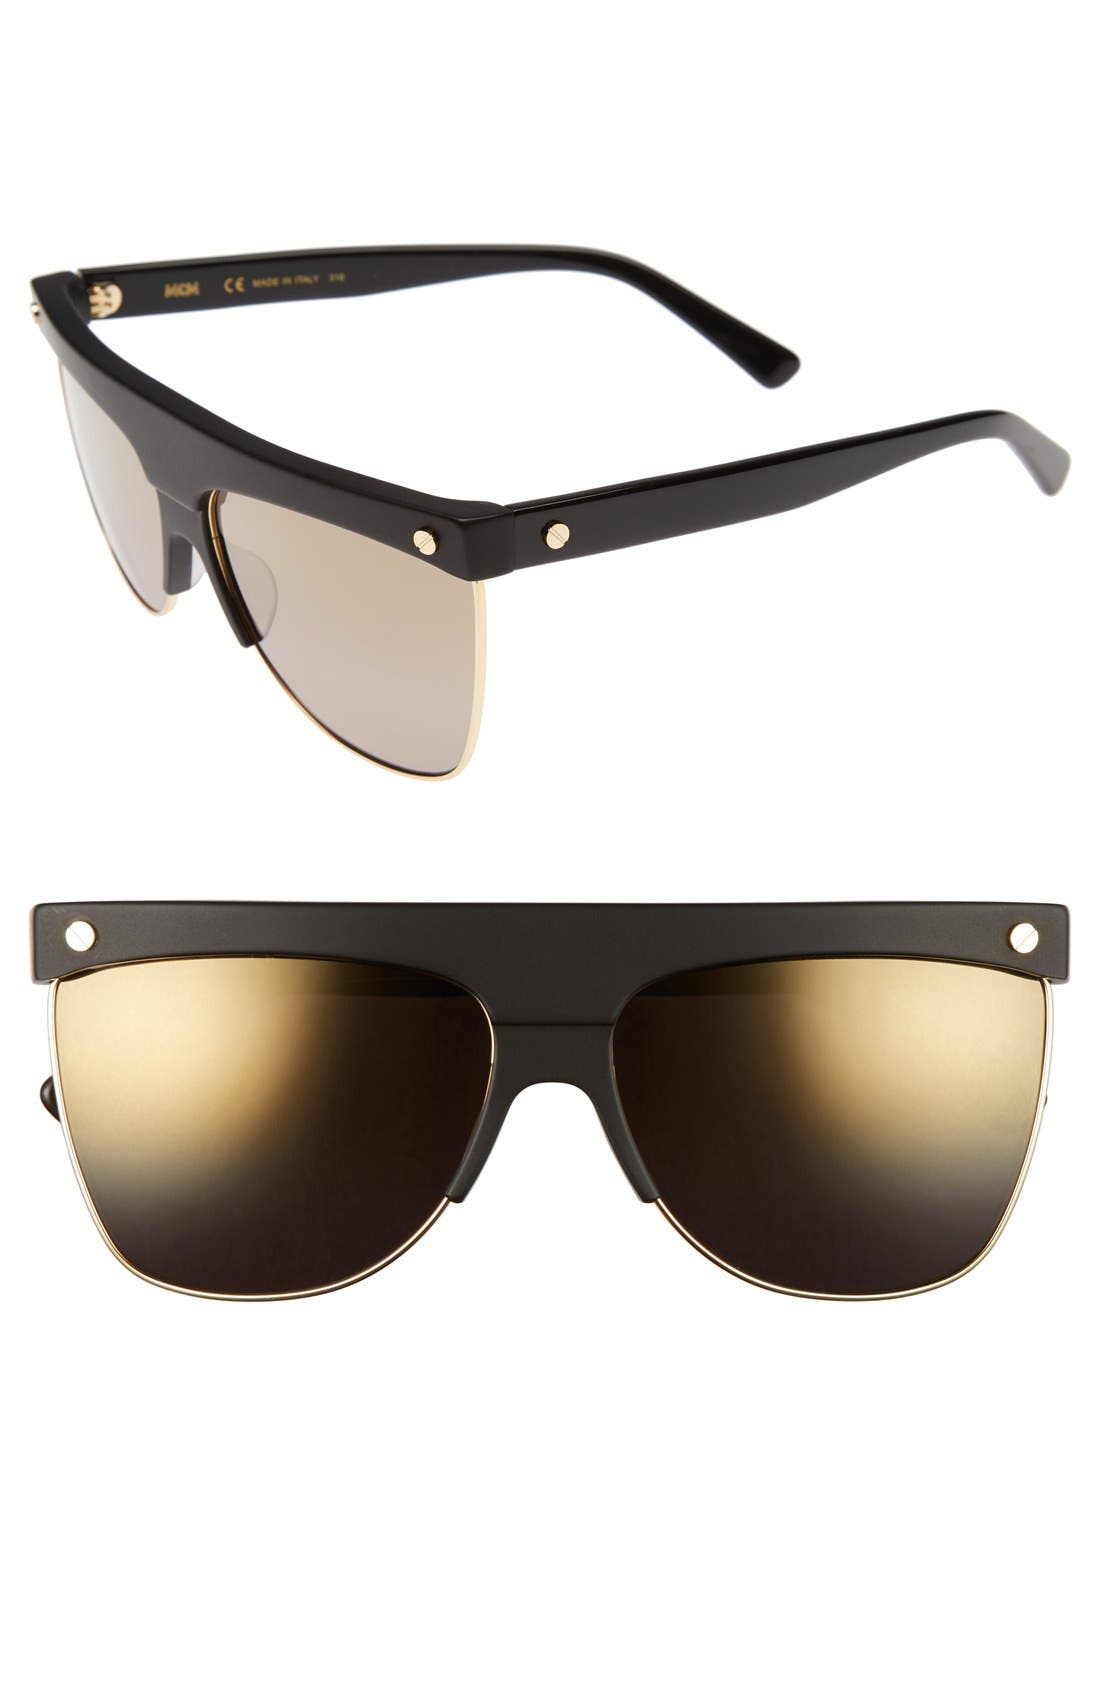 60mm Aviator Sunglasses,                             Main thumbnail 1, color,                             001